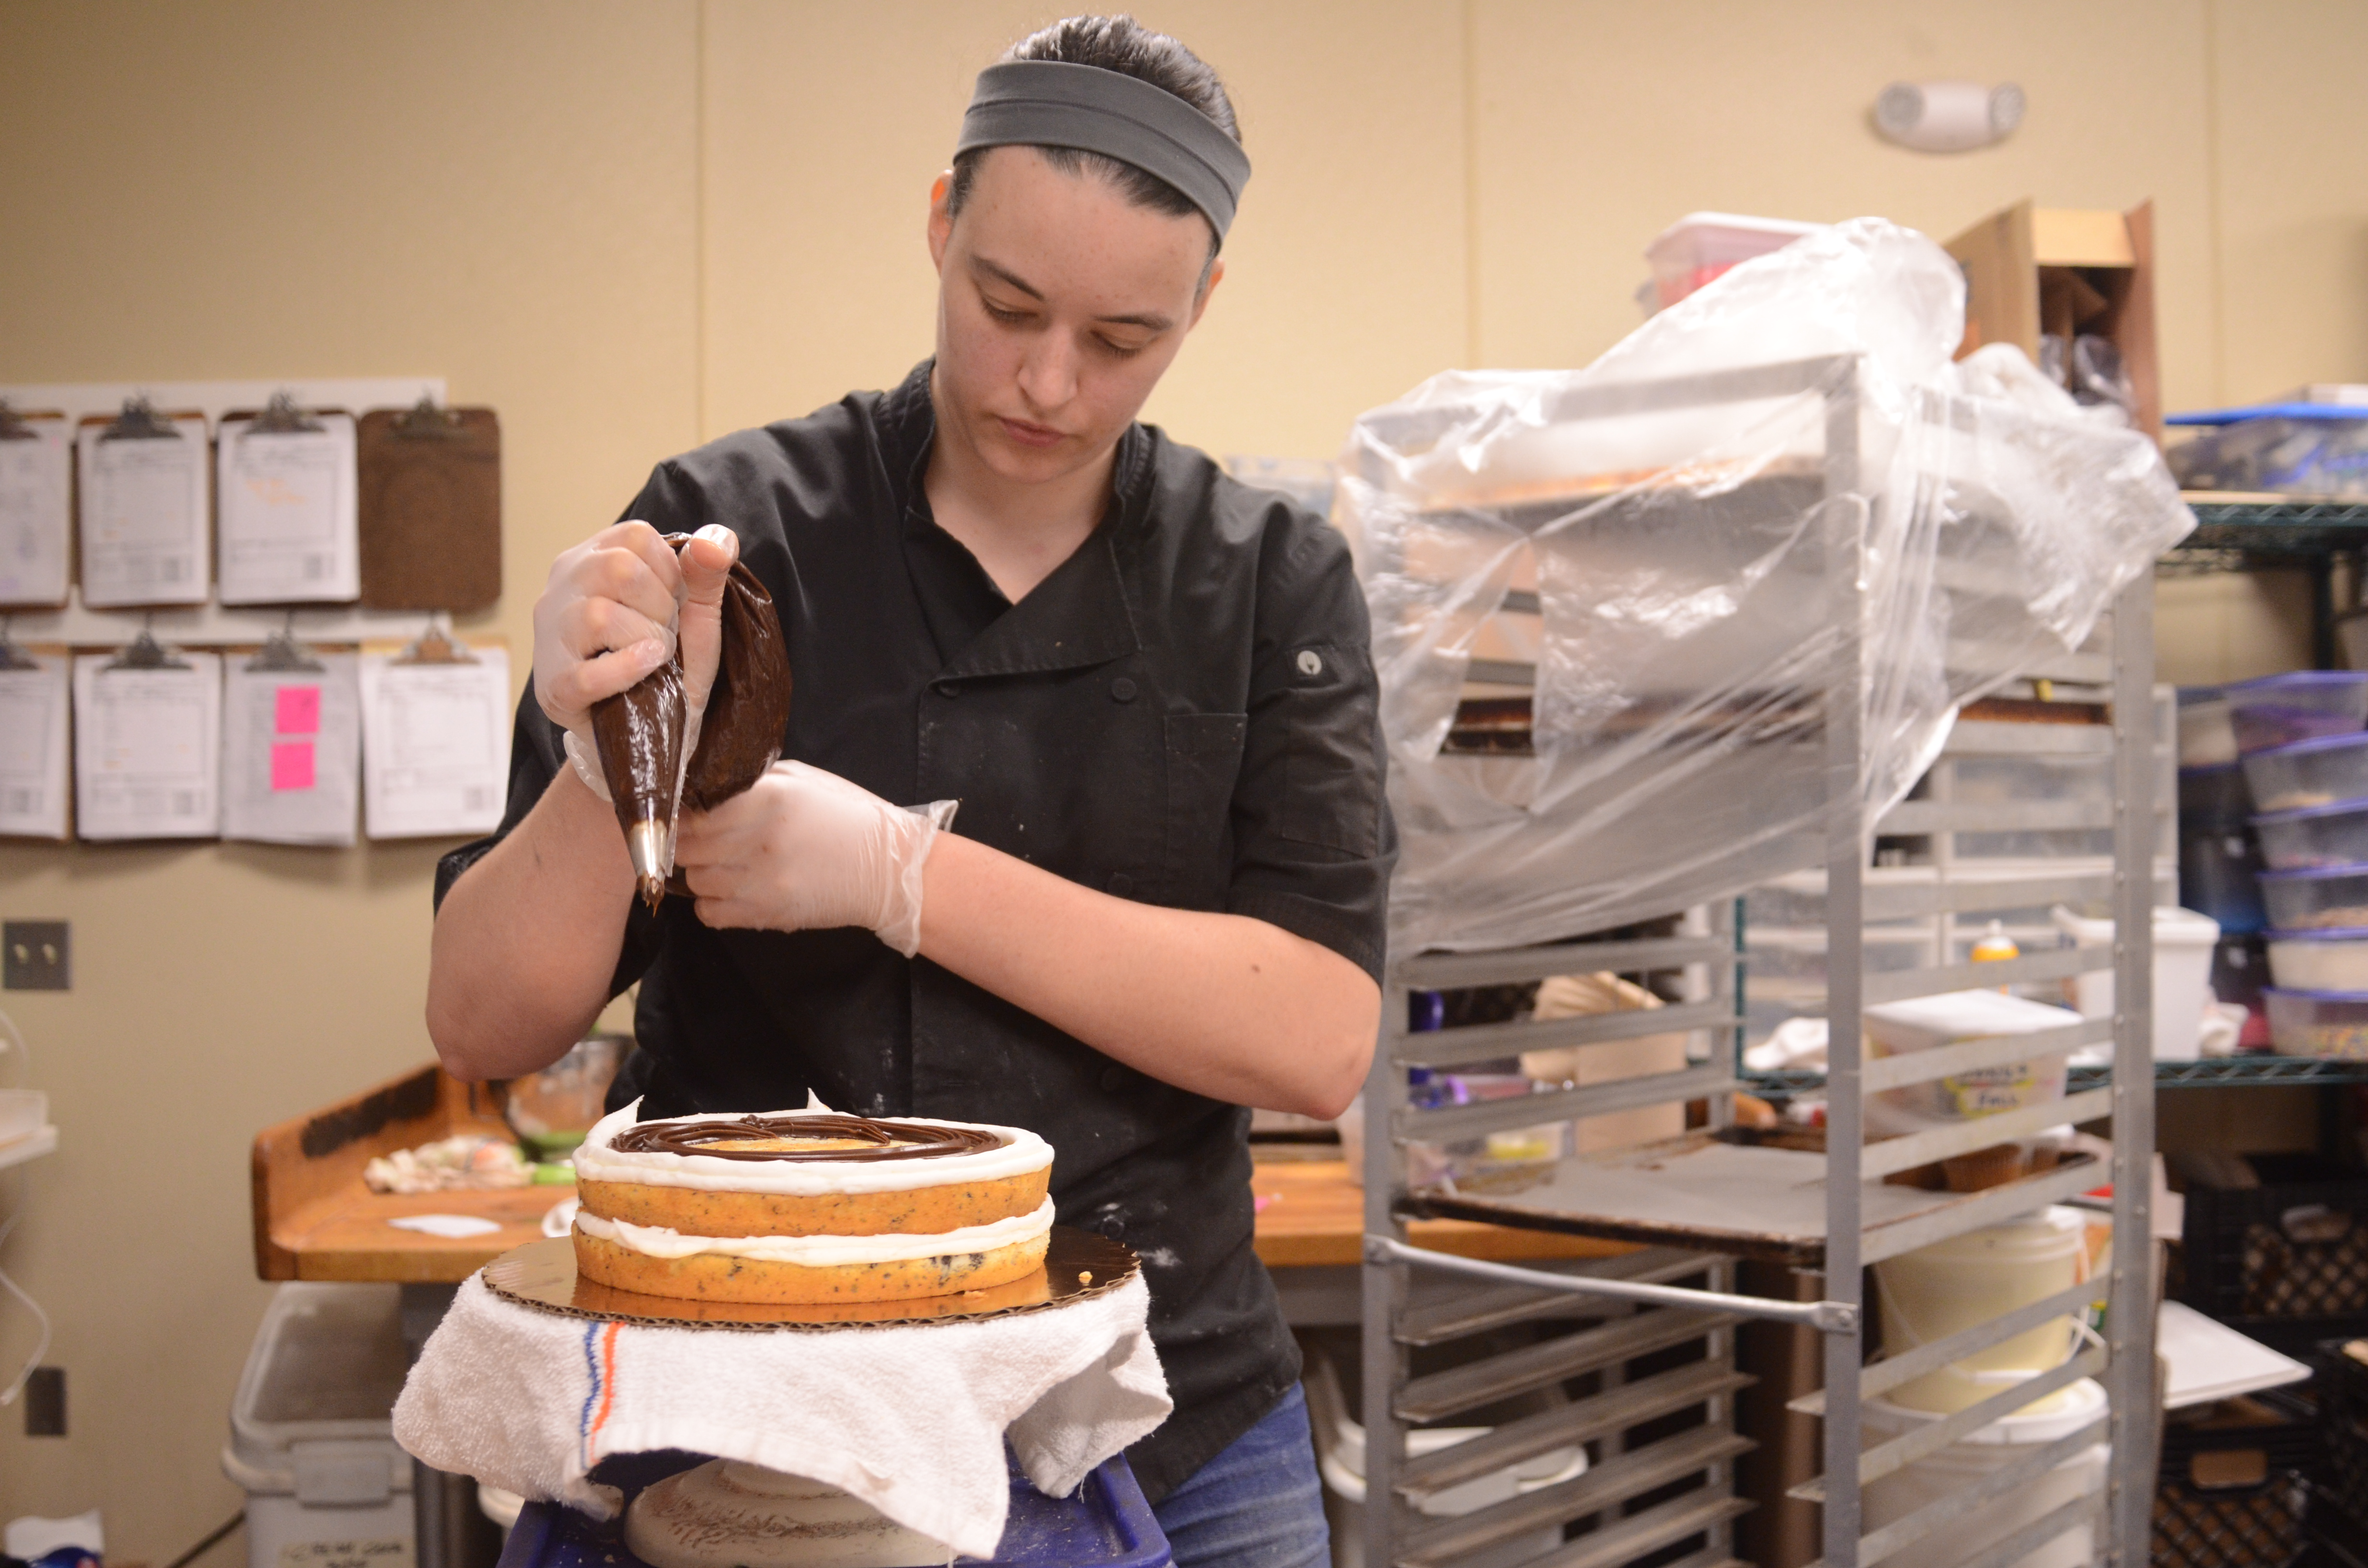 Haley Chapman begins icing the cake